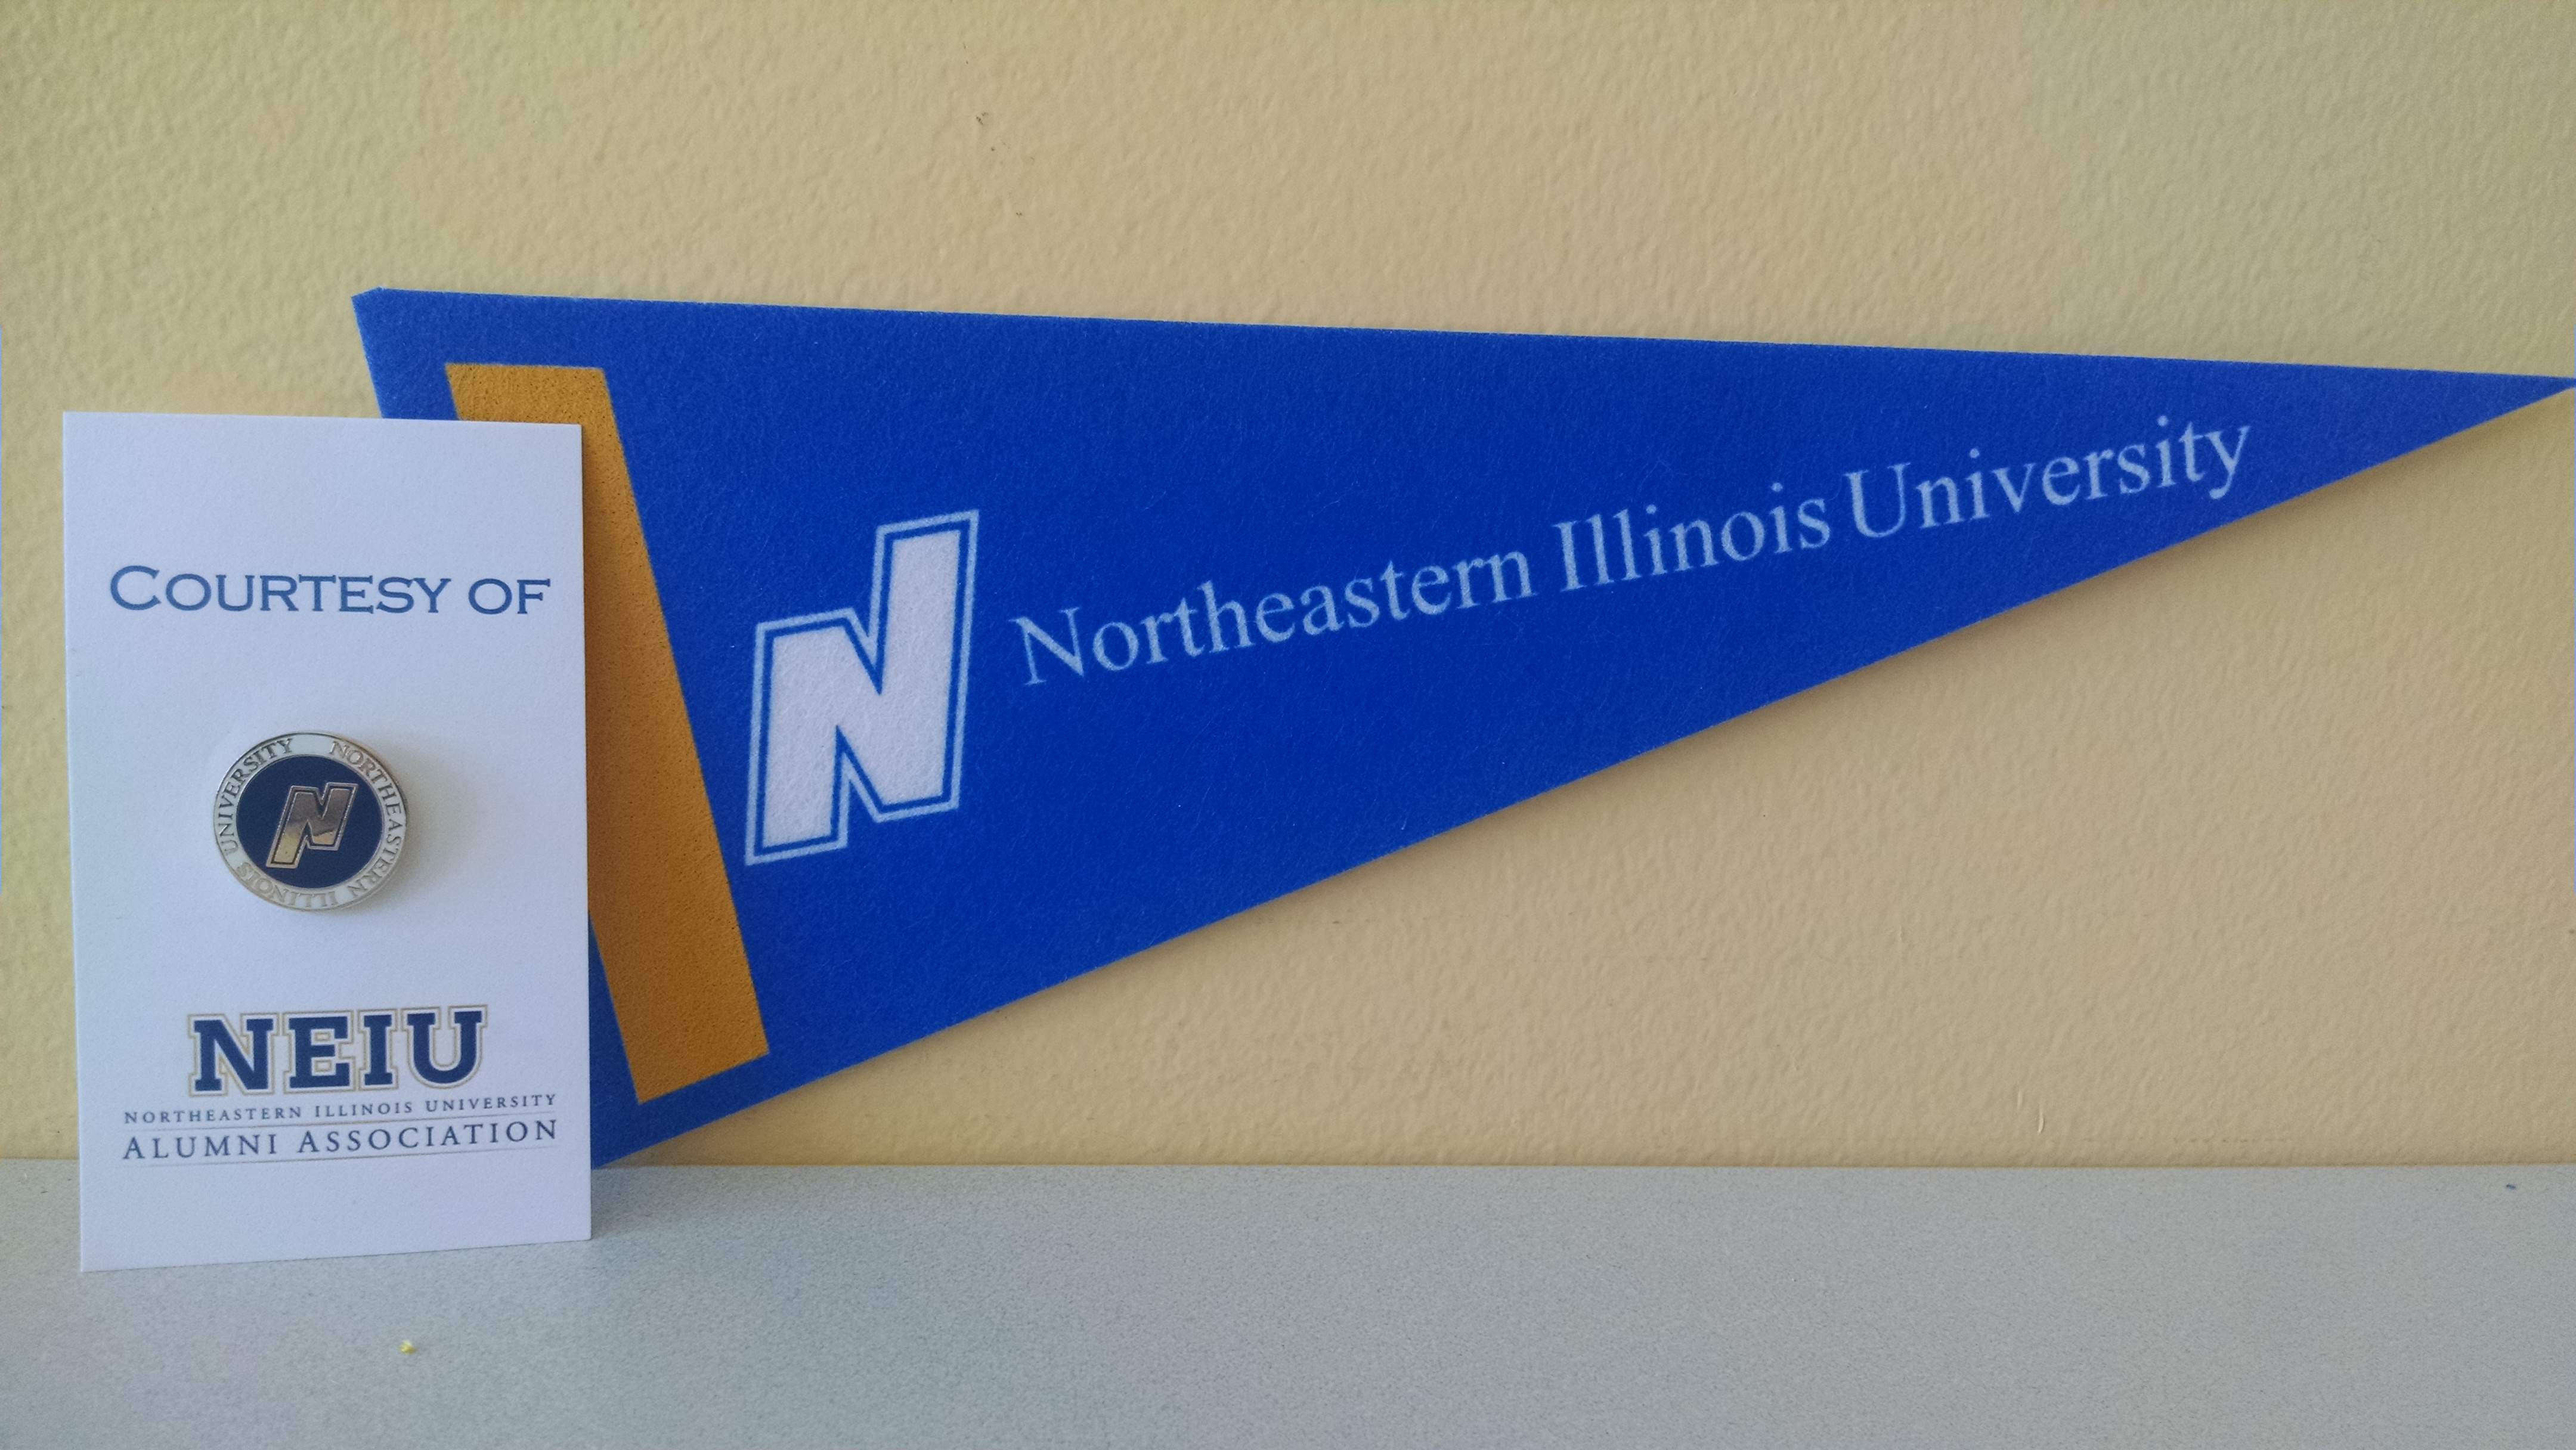 A blue Northeastern pennant hangs on a yellow wall.